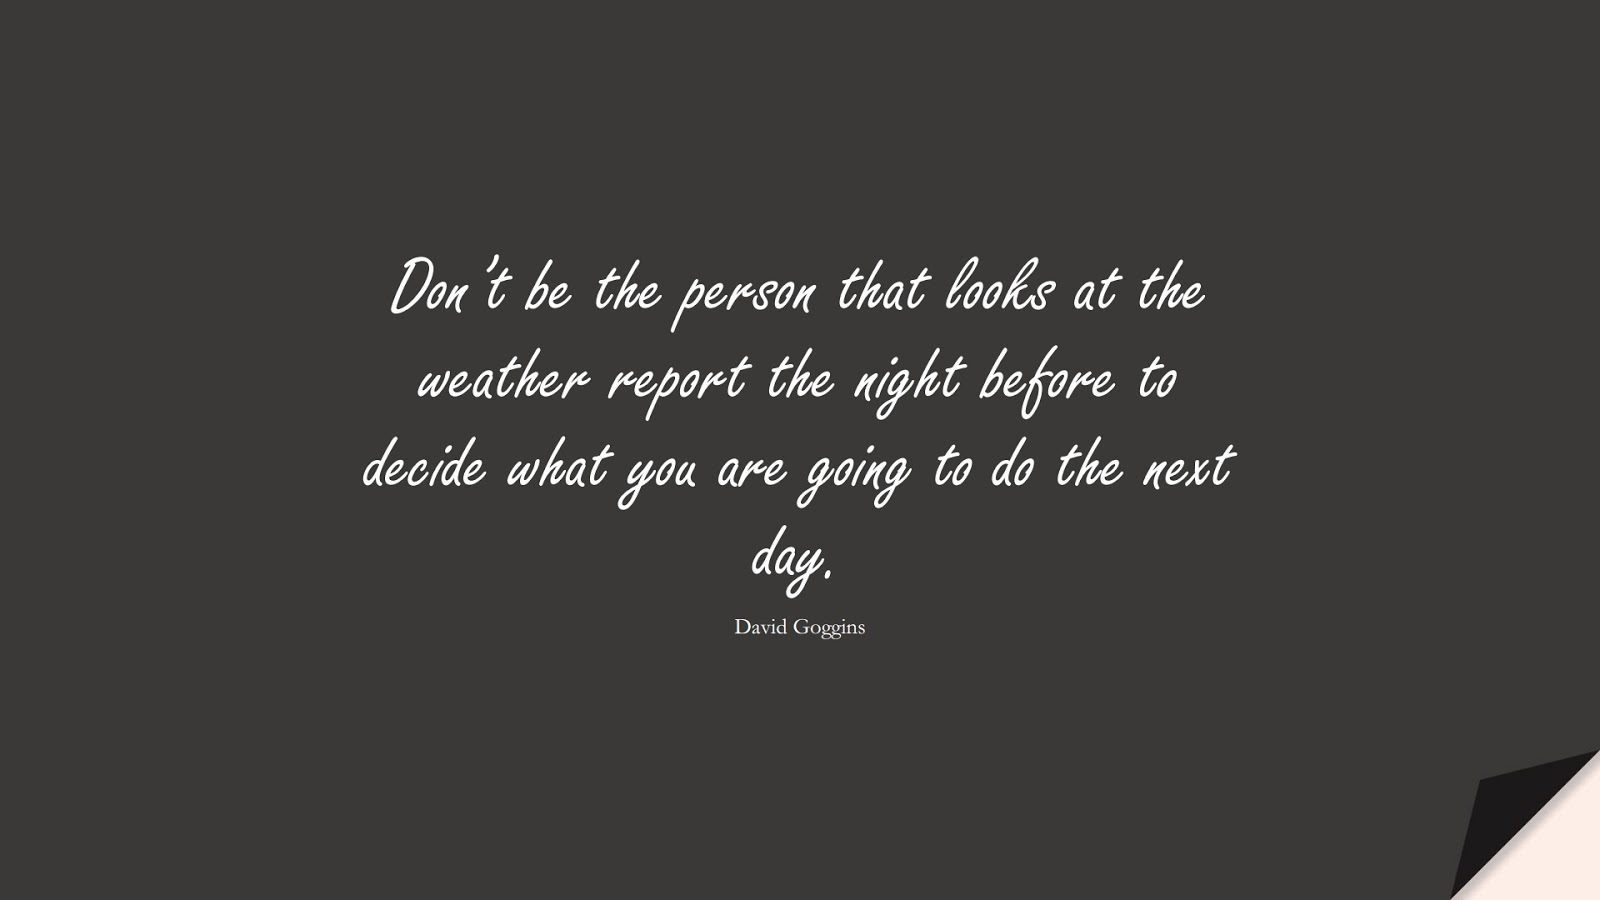 Don't be the person that looks at the weather report the night before to decide what you are going to do the next day. (David Goggins);  #StoicQuotes